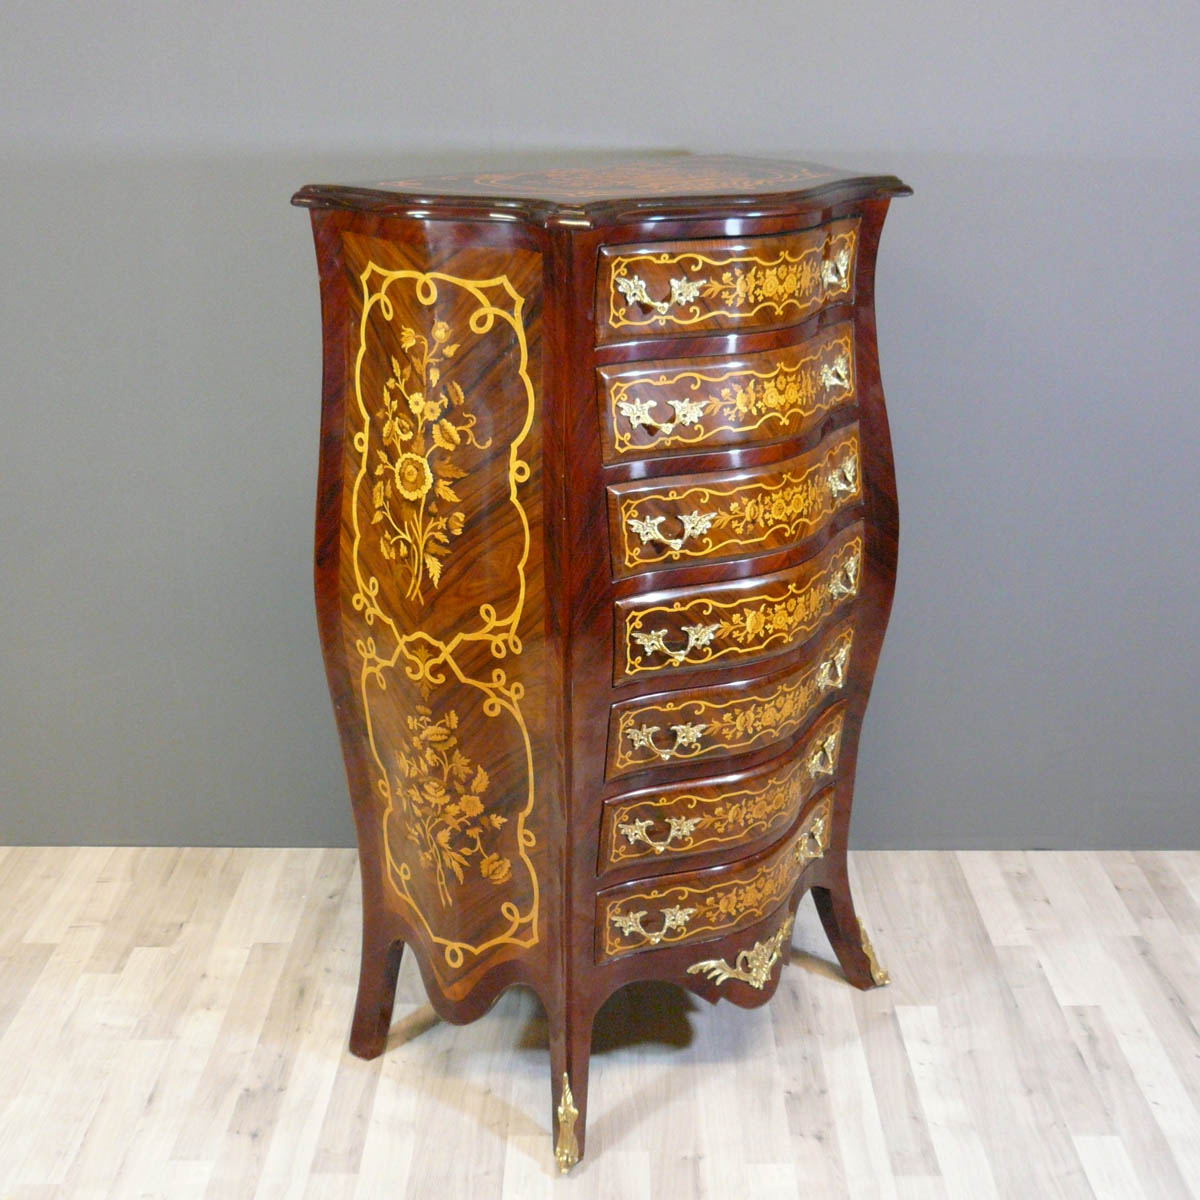 Semainier louis xv commode louis xv bureau louis xv for Meuble style louis 15